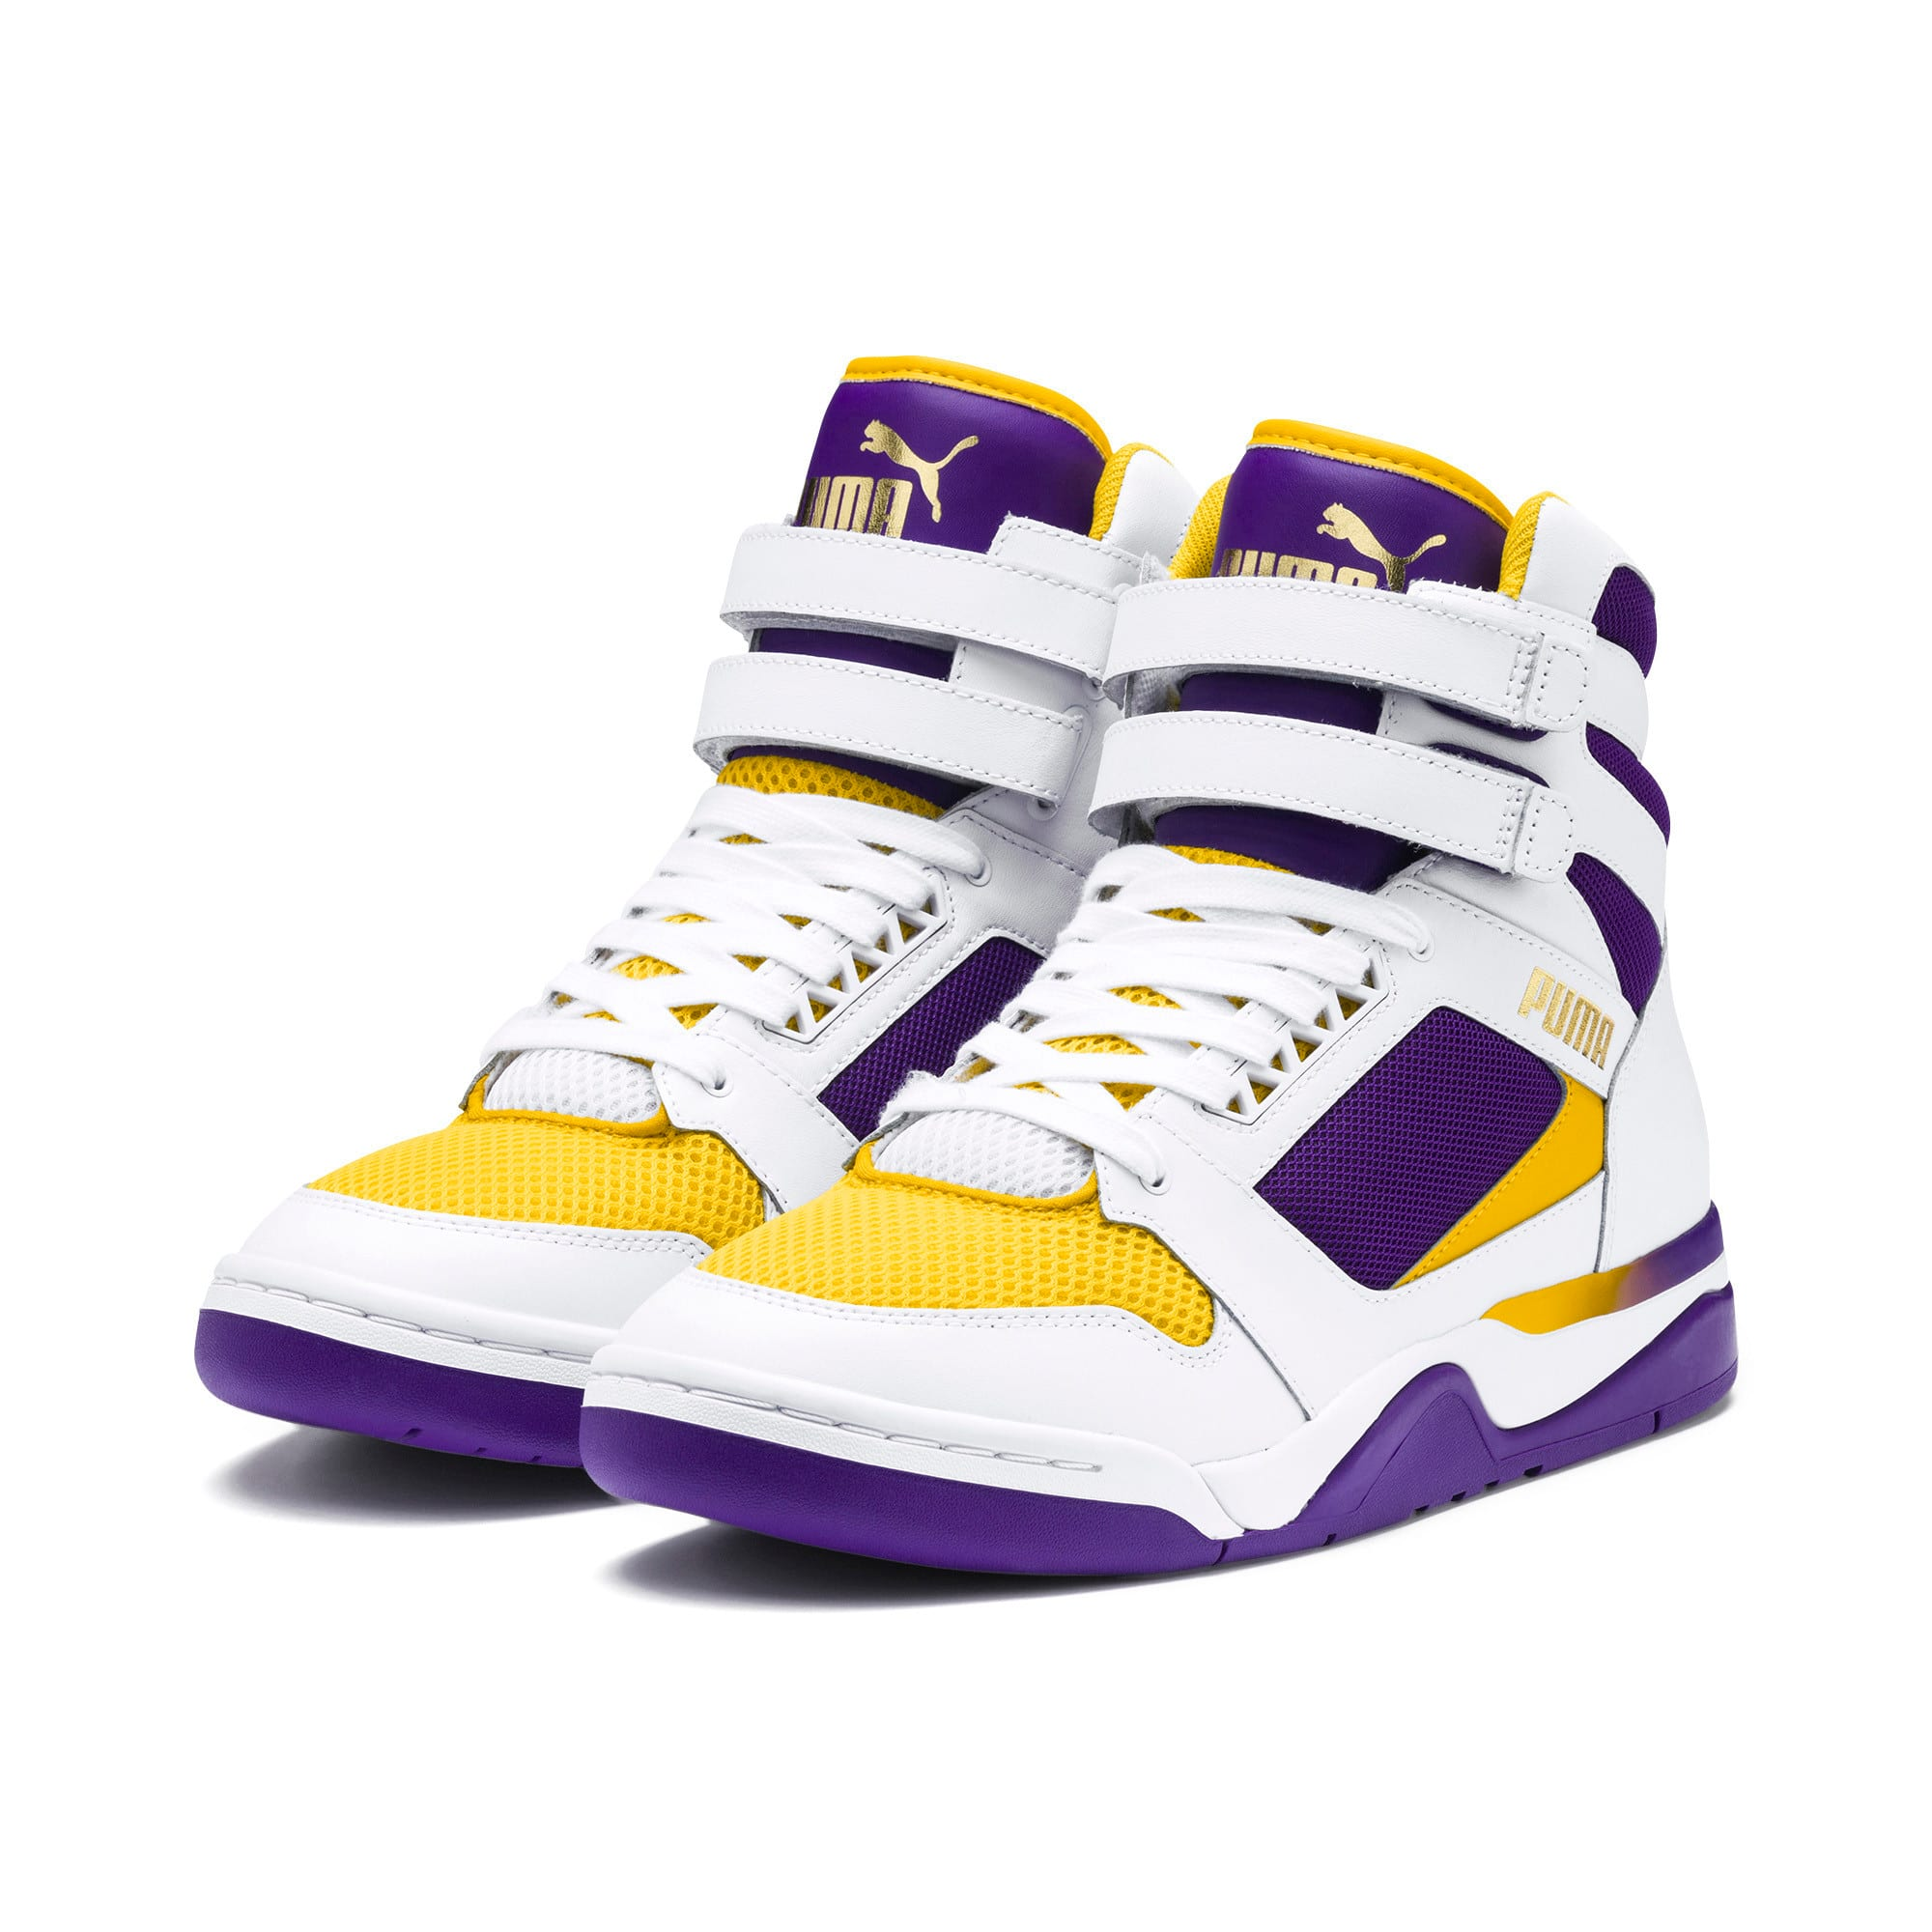 Thumbnail 2 of Palace Guard Mid Finals Sneakers, Puma White-Prism Violet-, medium